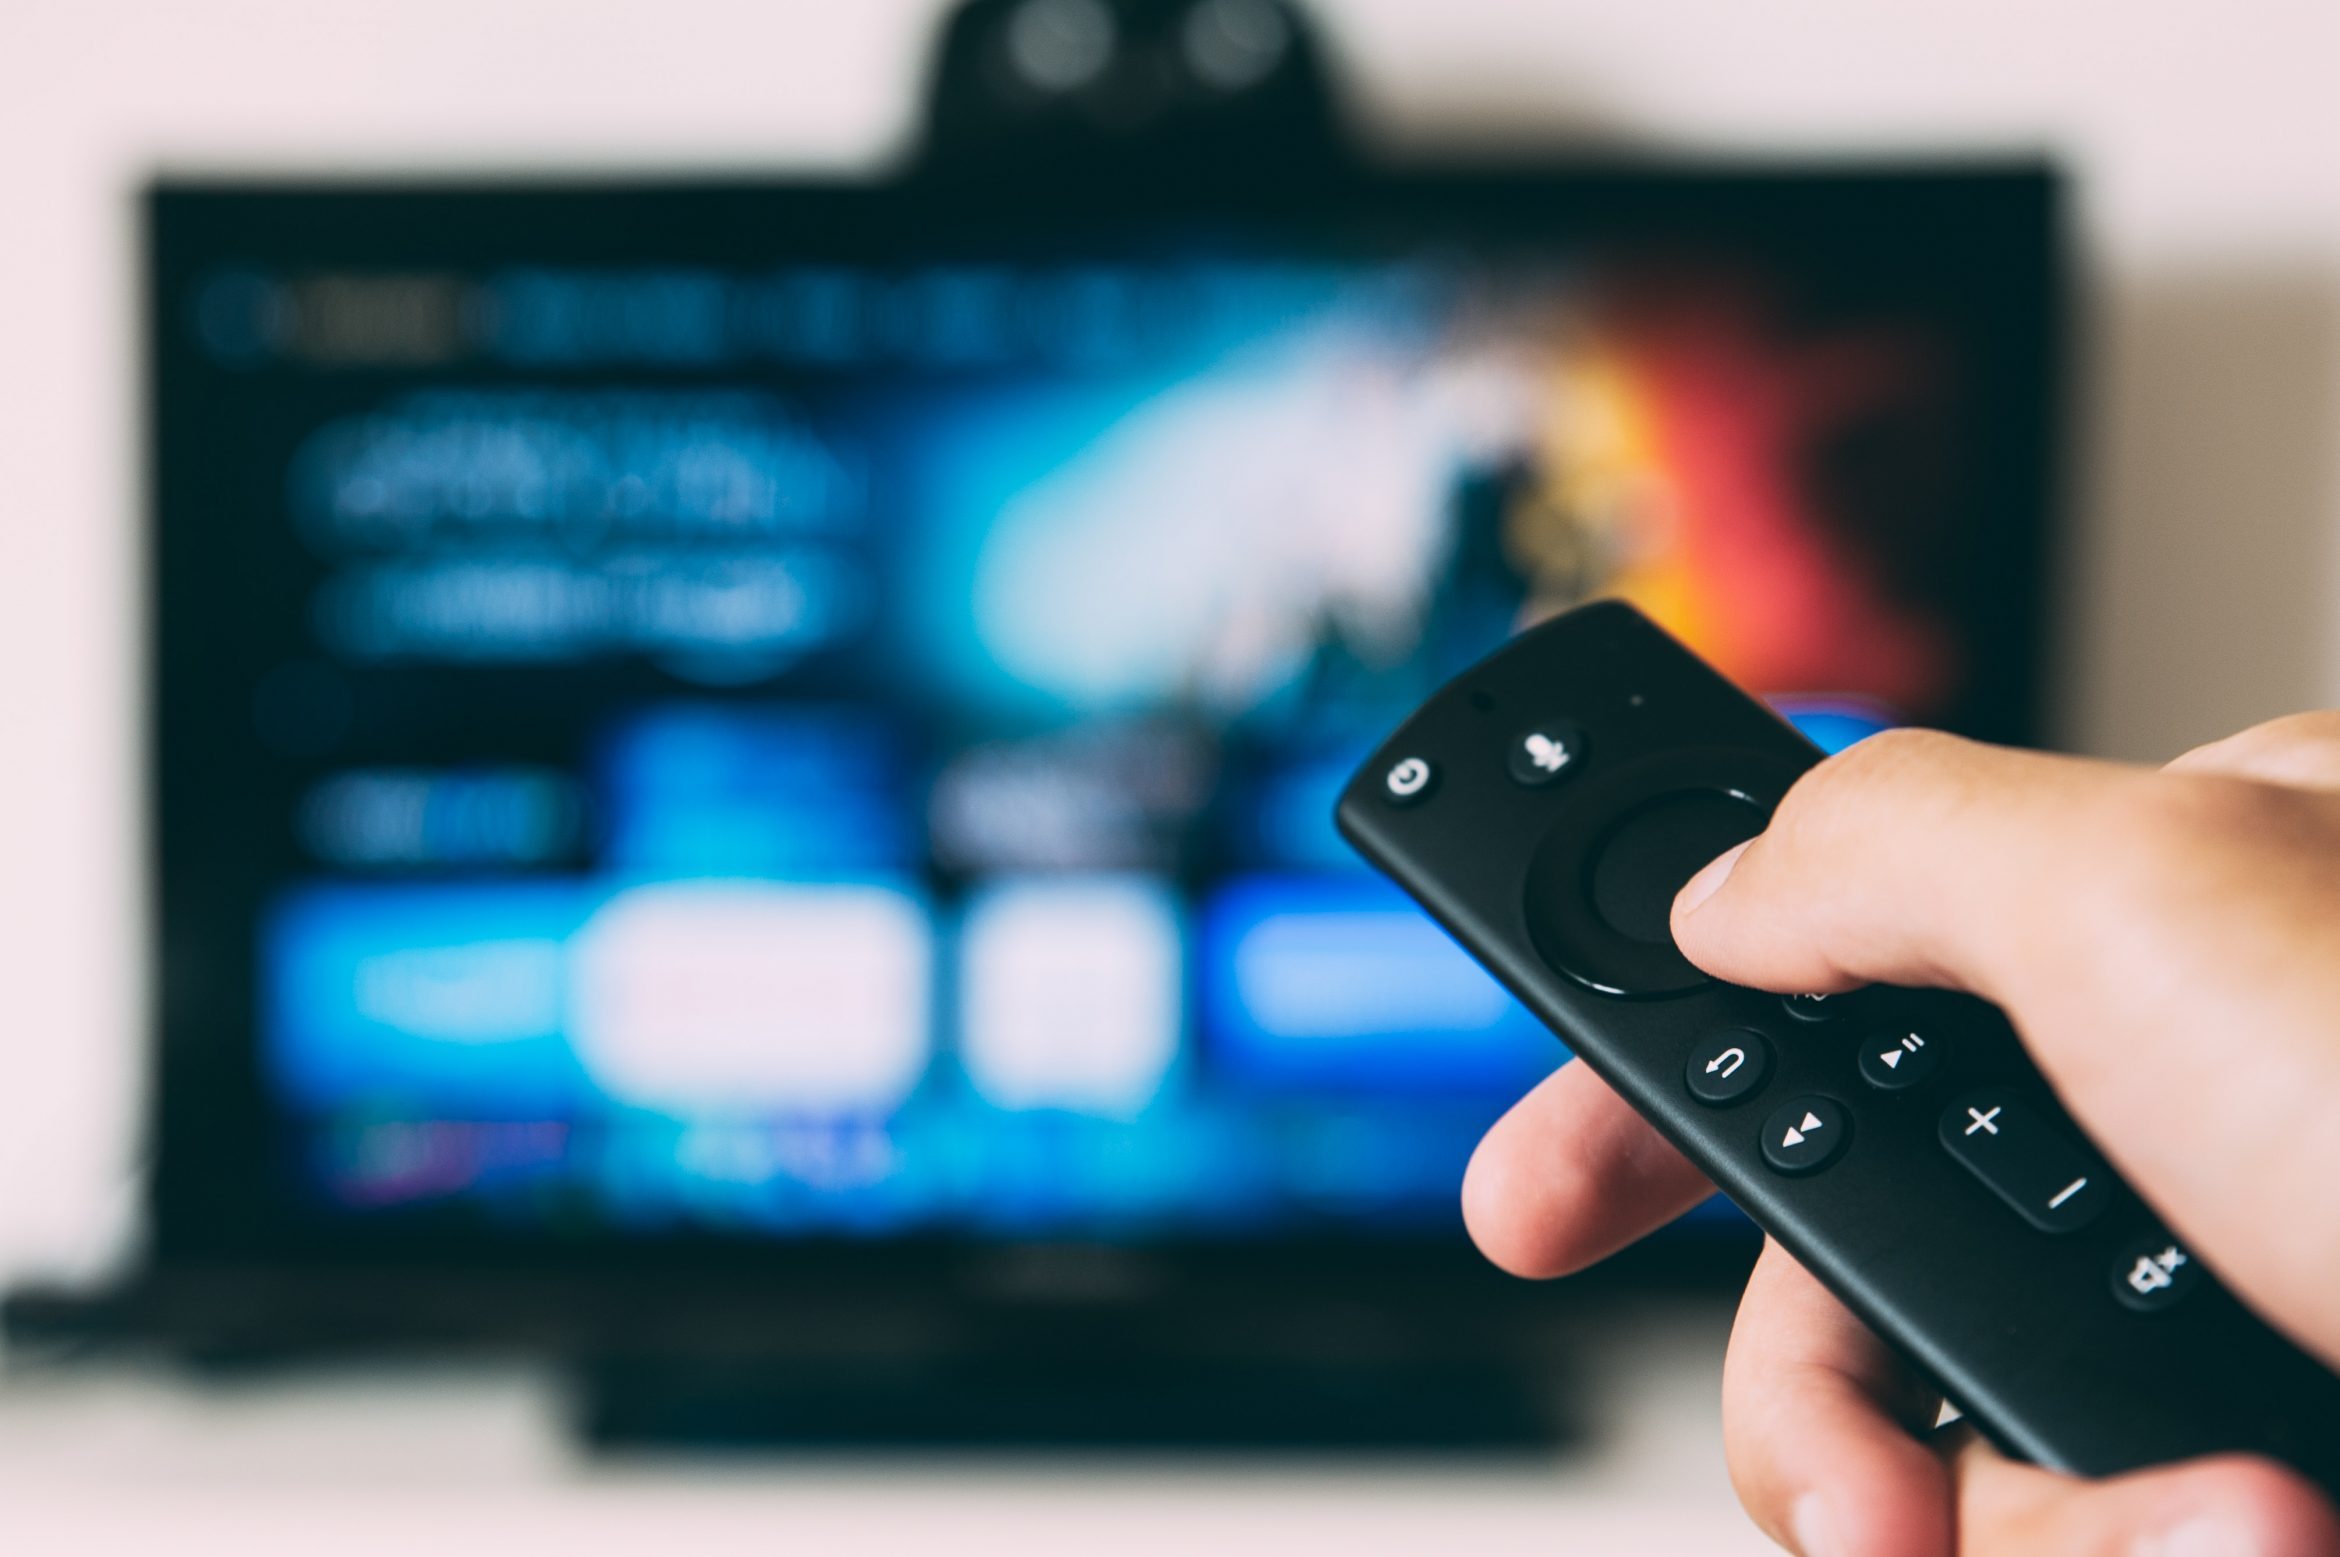 56% of 13-37-year-olds say they don't watch cable because all their entertainment is on streaming services